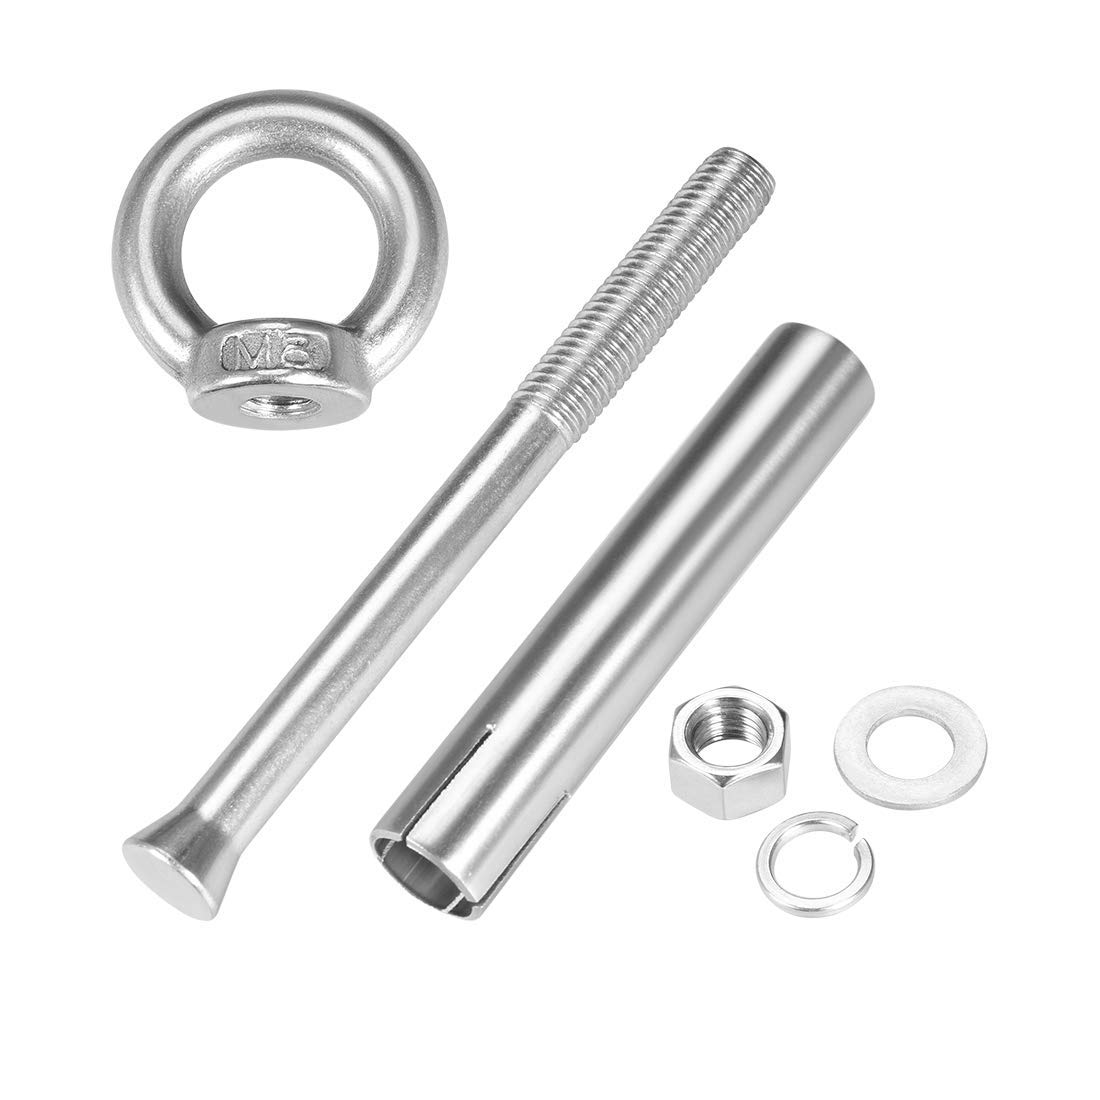 M8 x 100 Screw nut with Expansion Eye Bolt with Ring 304 Stainless Steel Anchor Rough Bolts 1 Piece